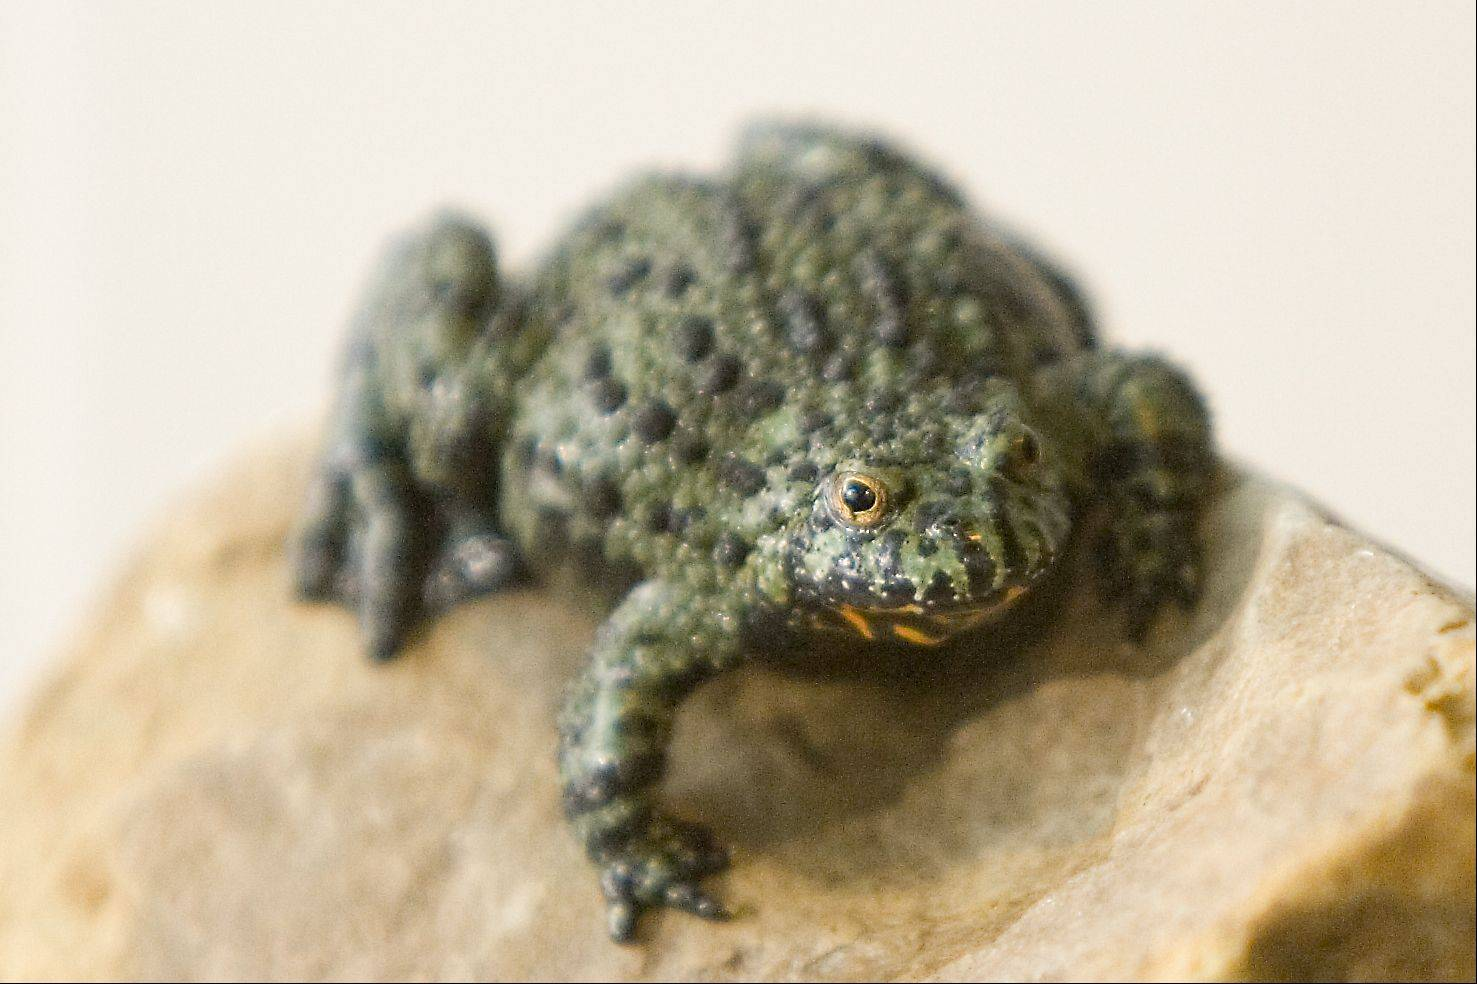 There are over 5,000 species of frogs known to exist, 10 of which are native to Illinois.